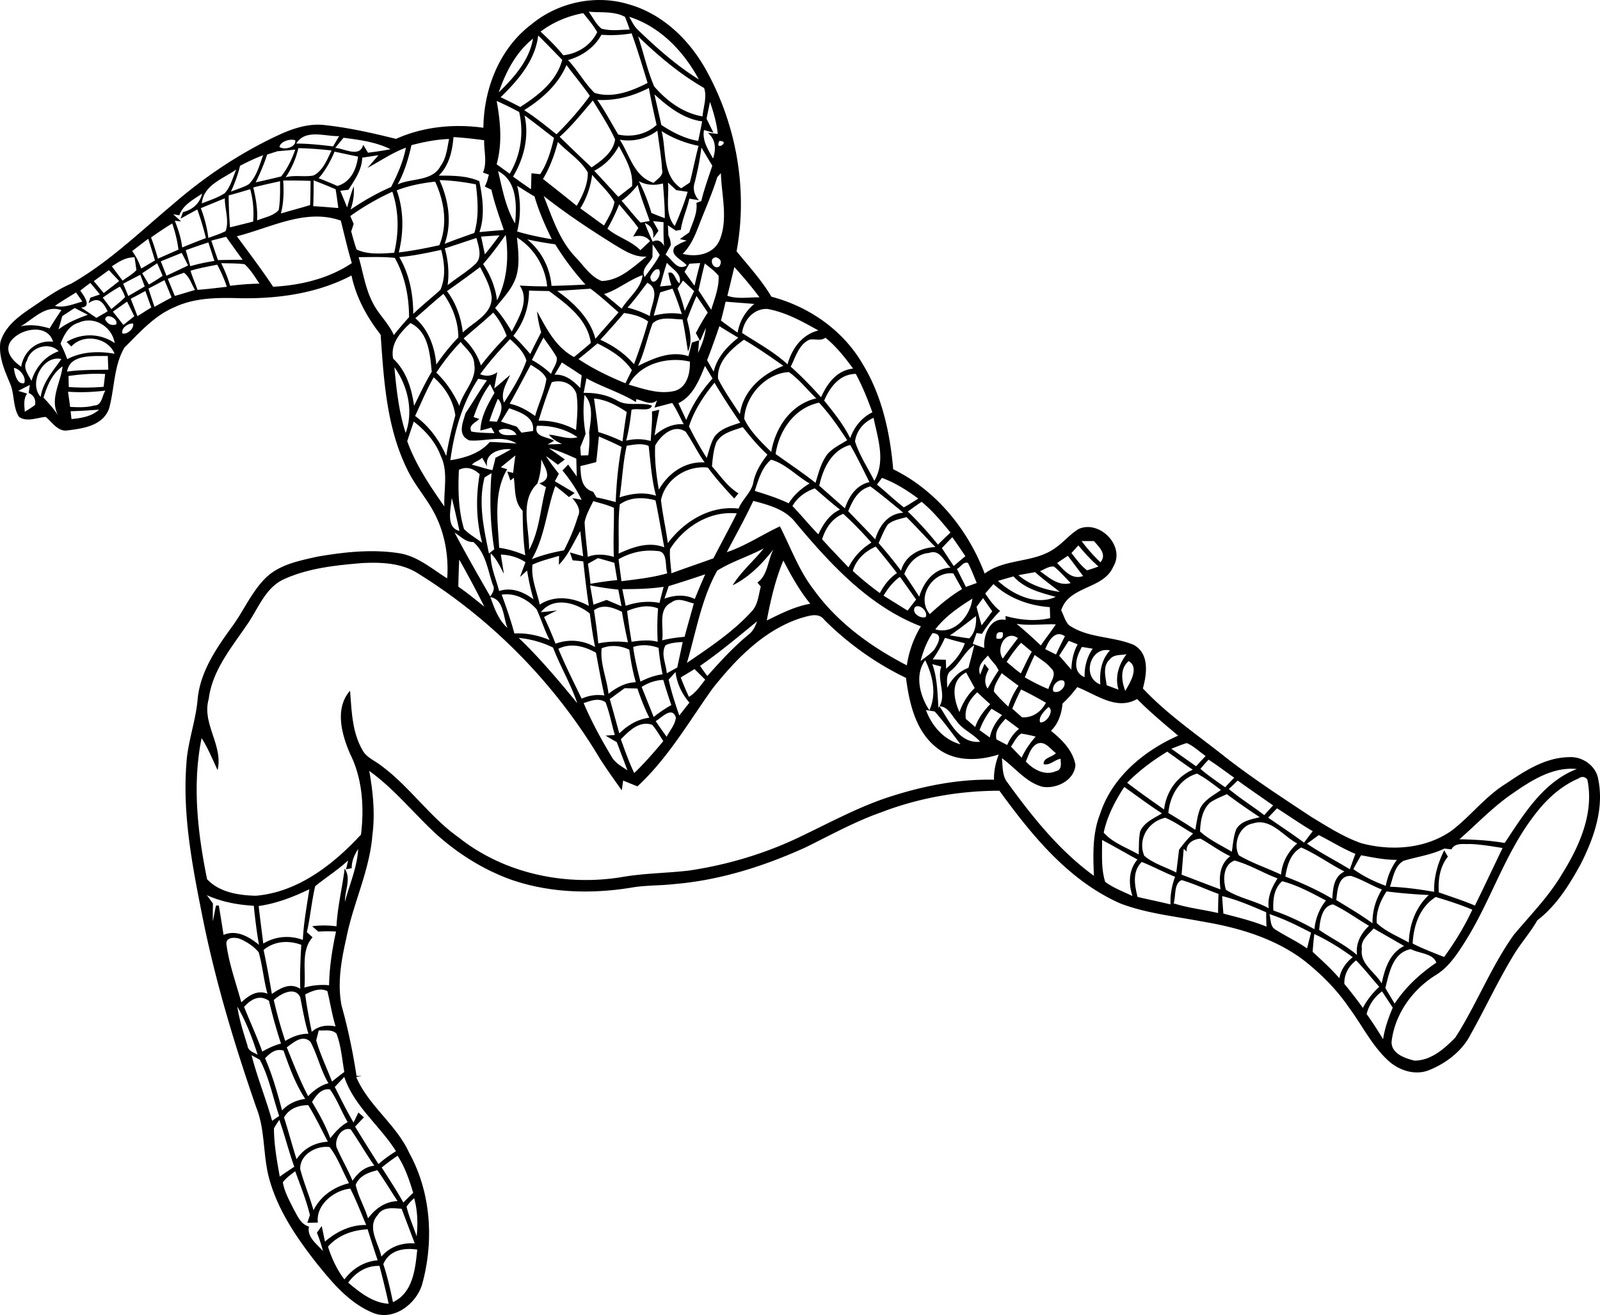 spiderman coloring pages - Coloring Pics For Kids